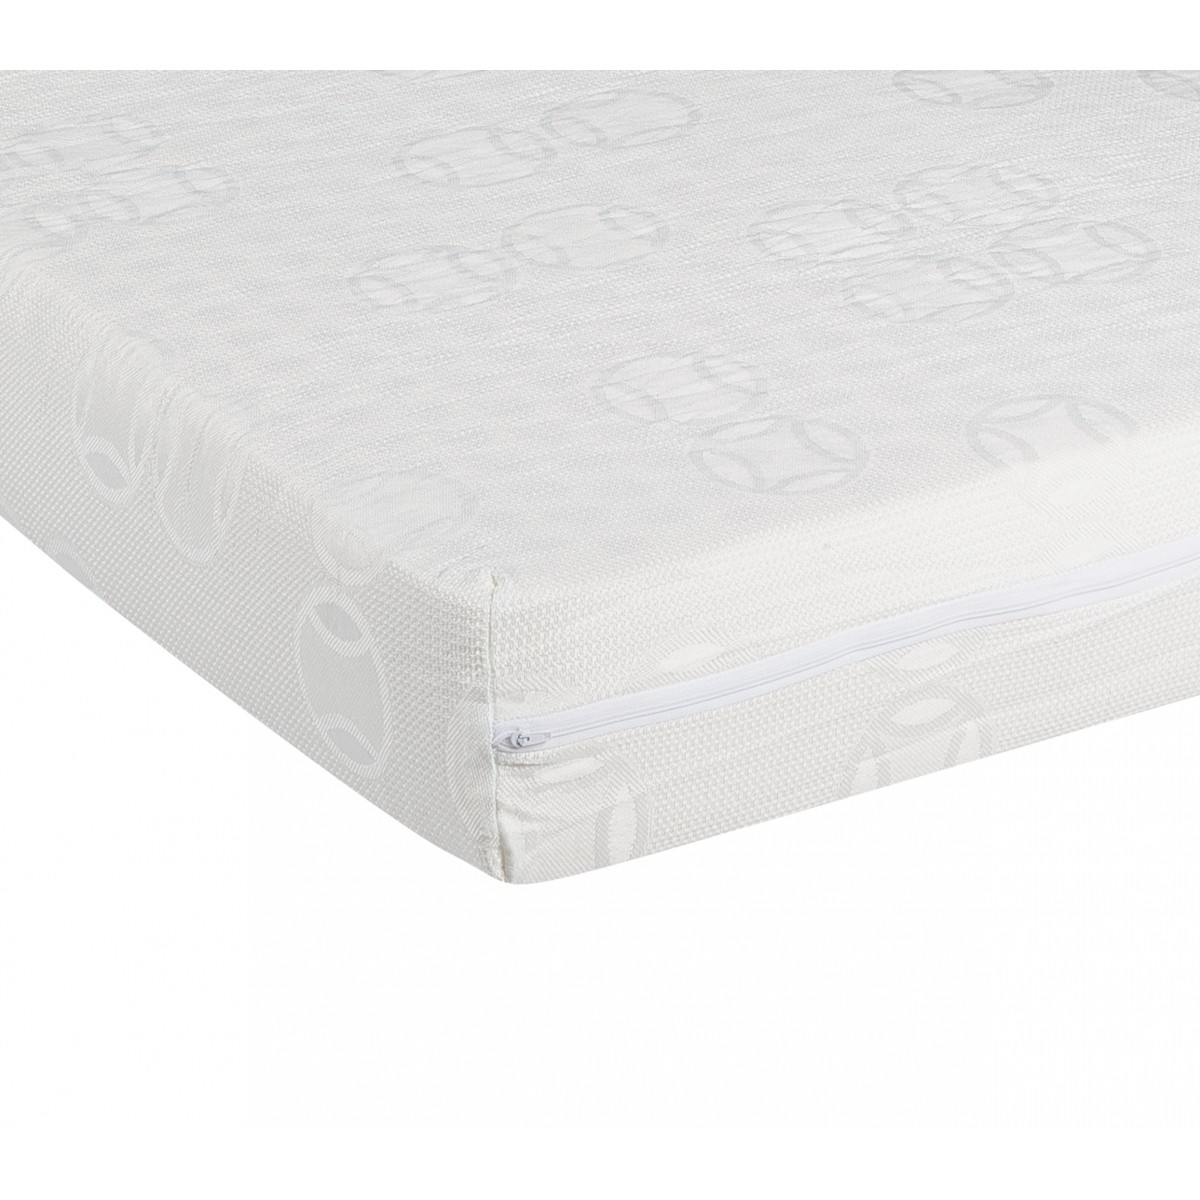 matelas latex 140x190 soldes stunning matelas latex bio. Black Bedroom Furniture Sets. Home Design Ideas